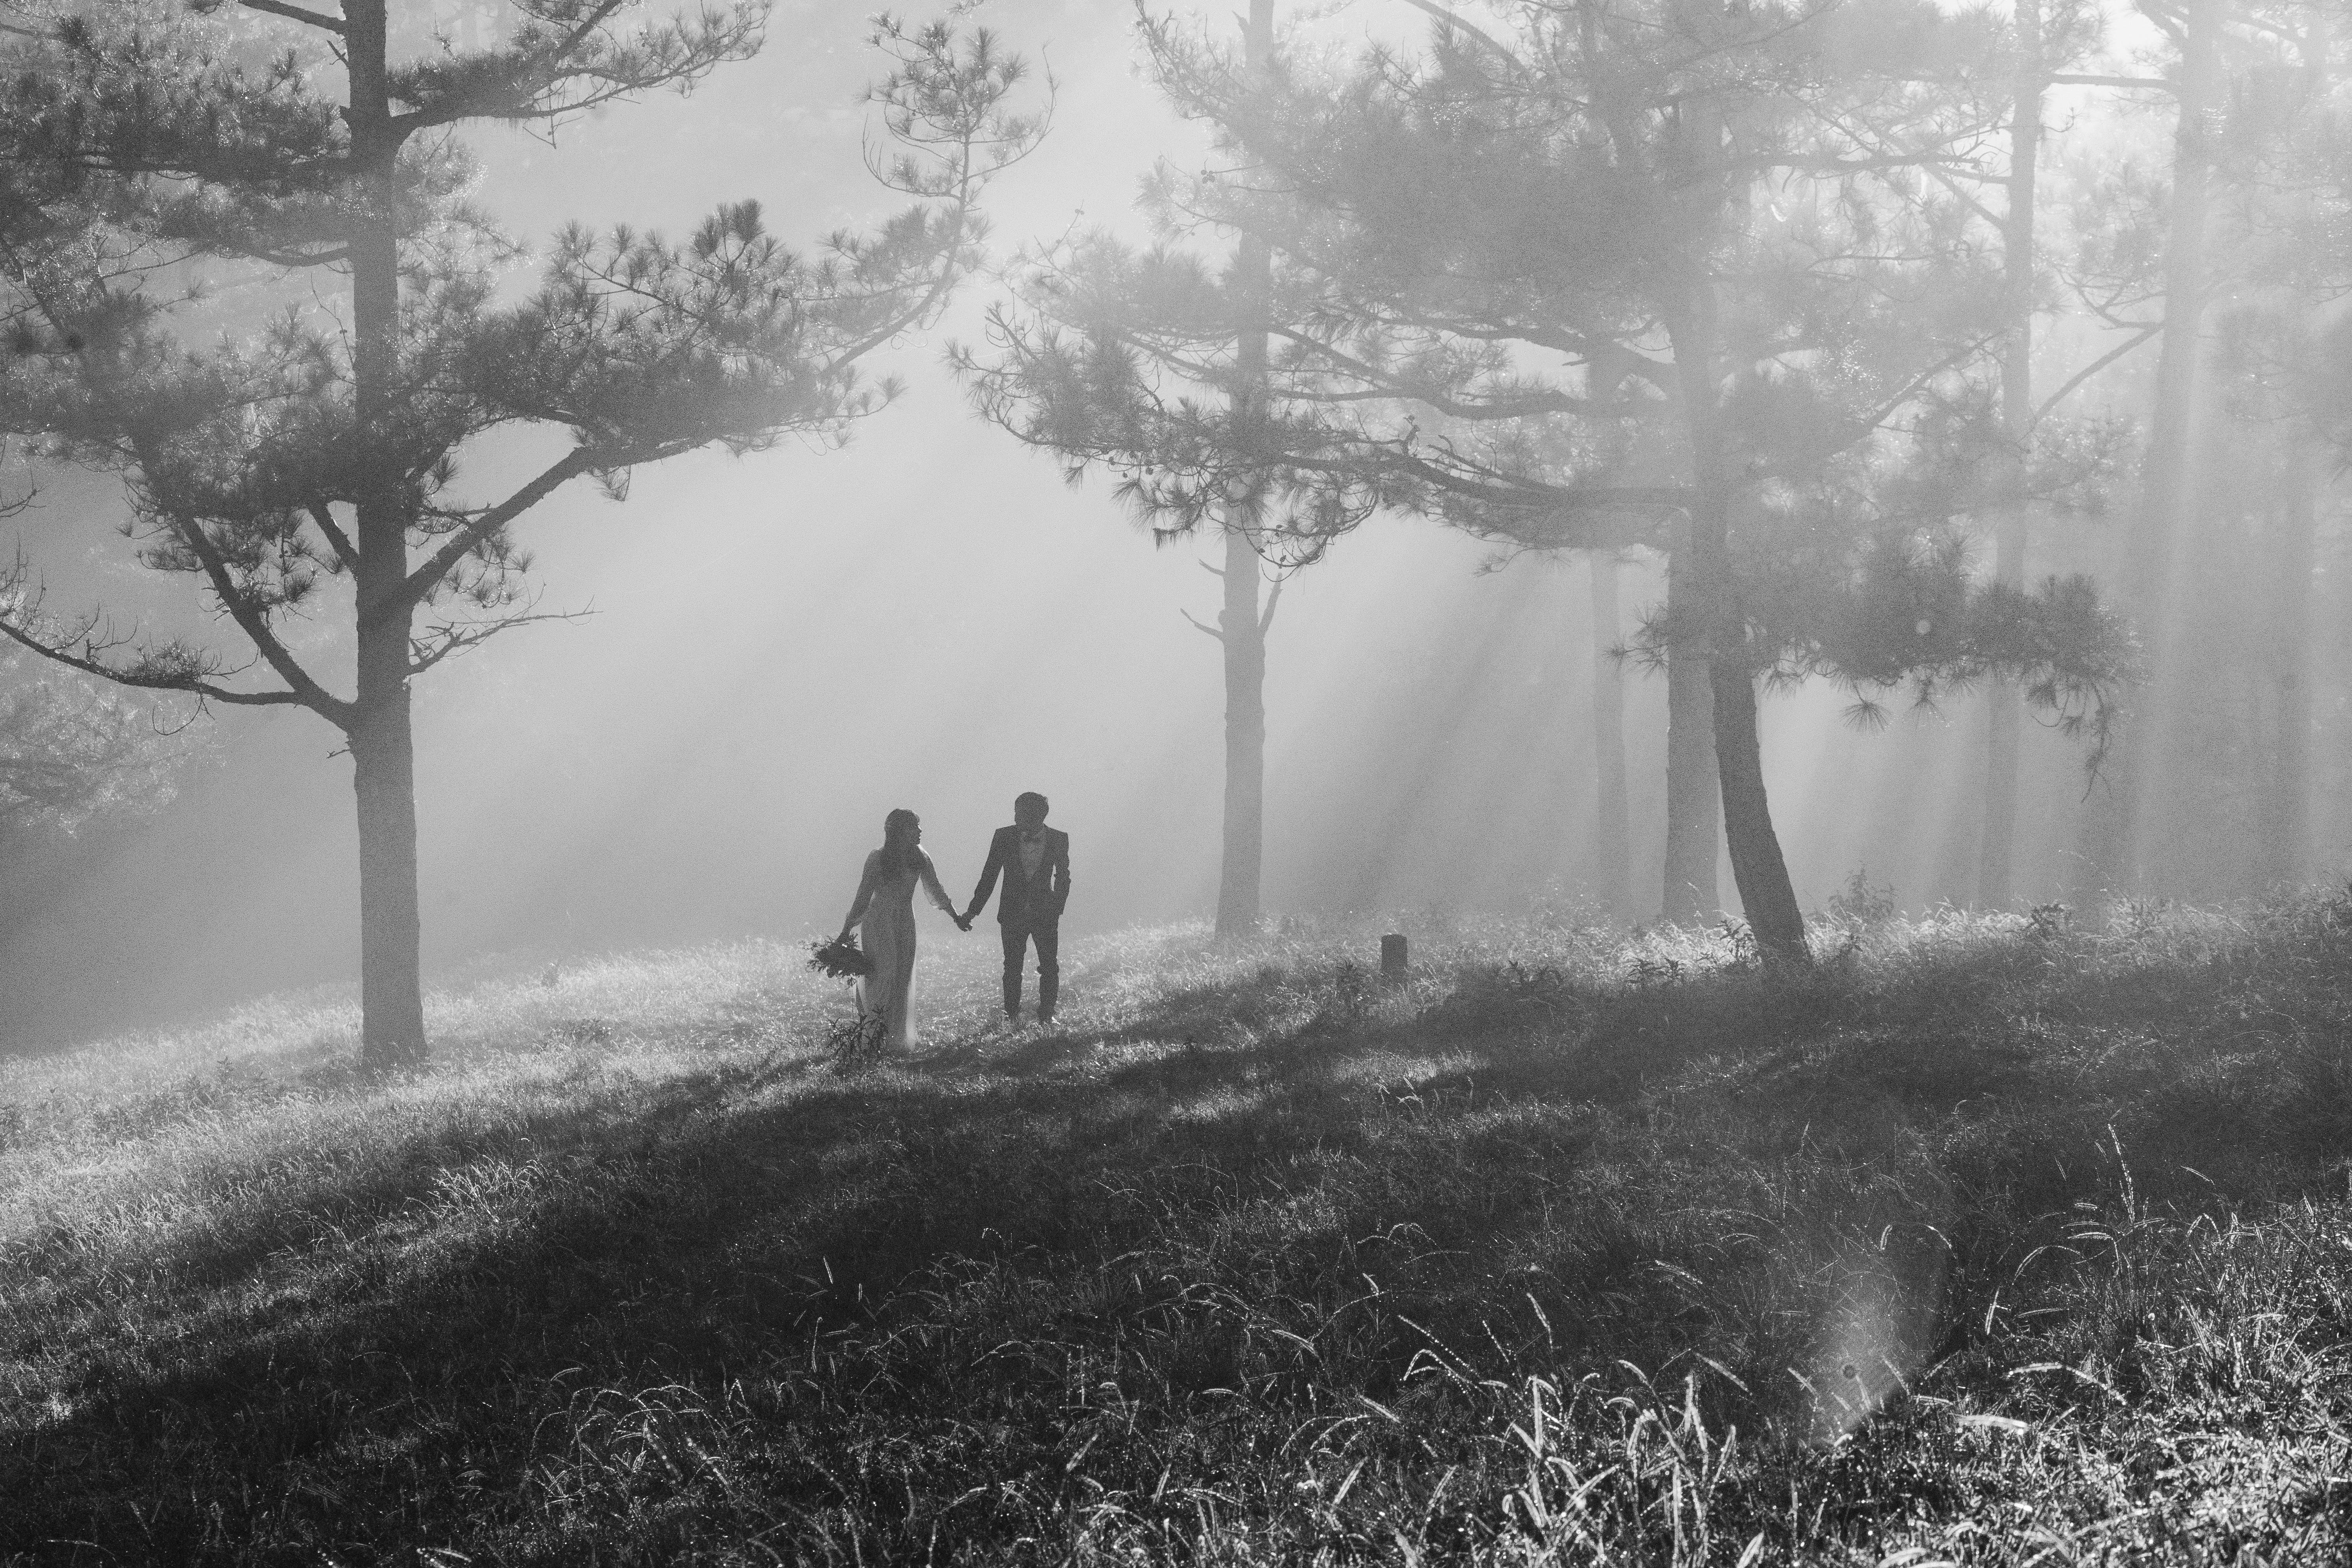 Grayscale Photography of Man and Woman Holding Hands